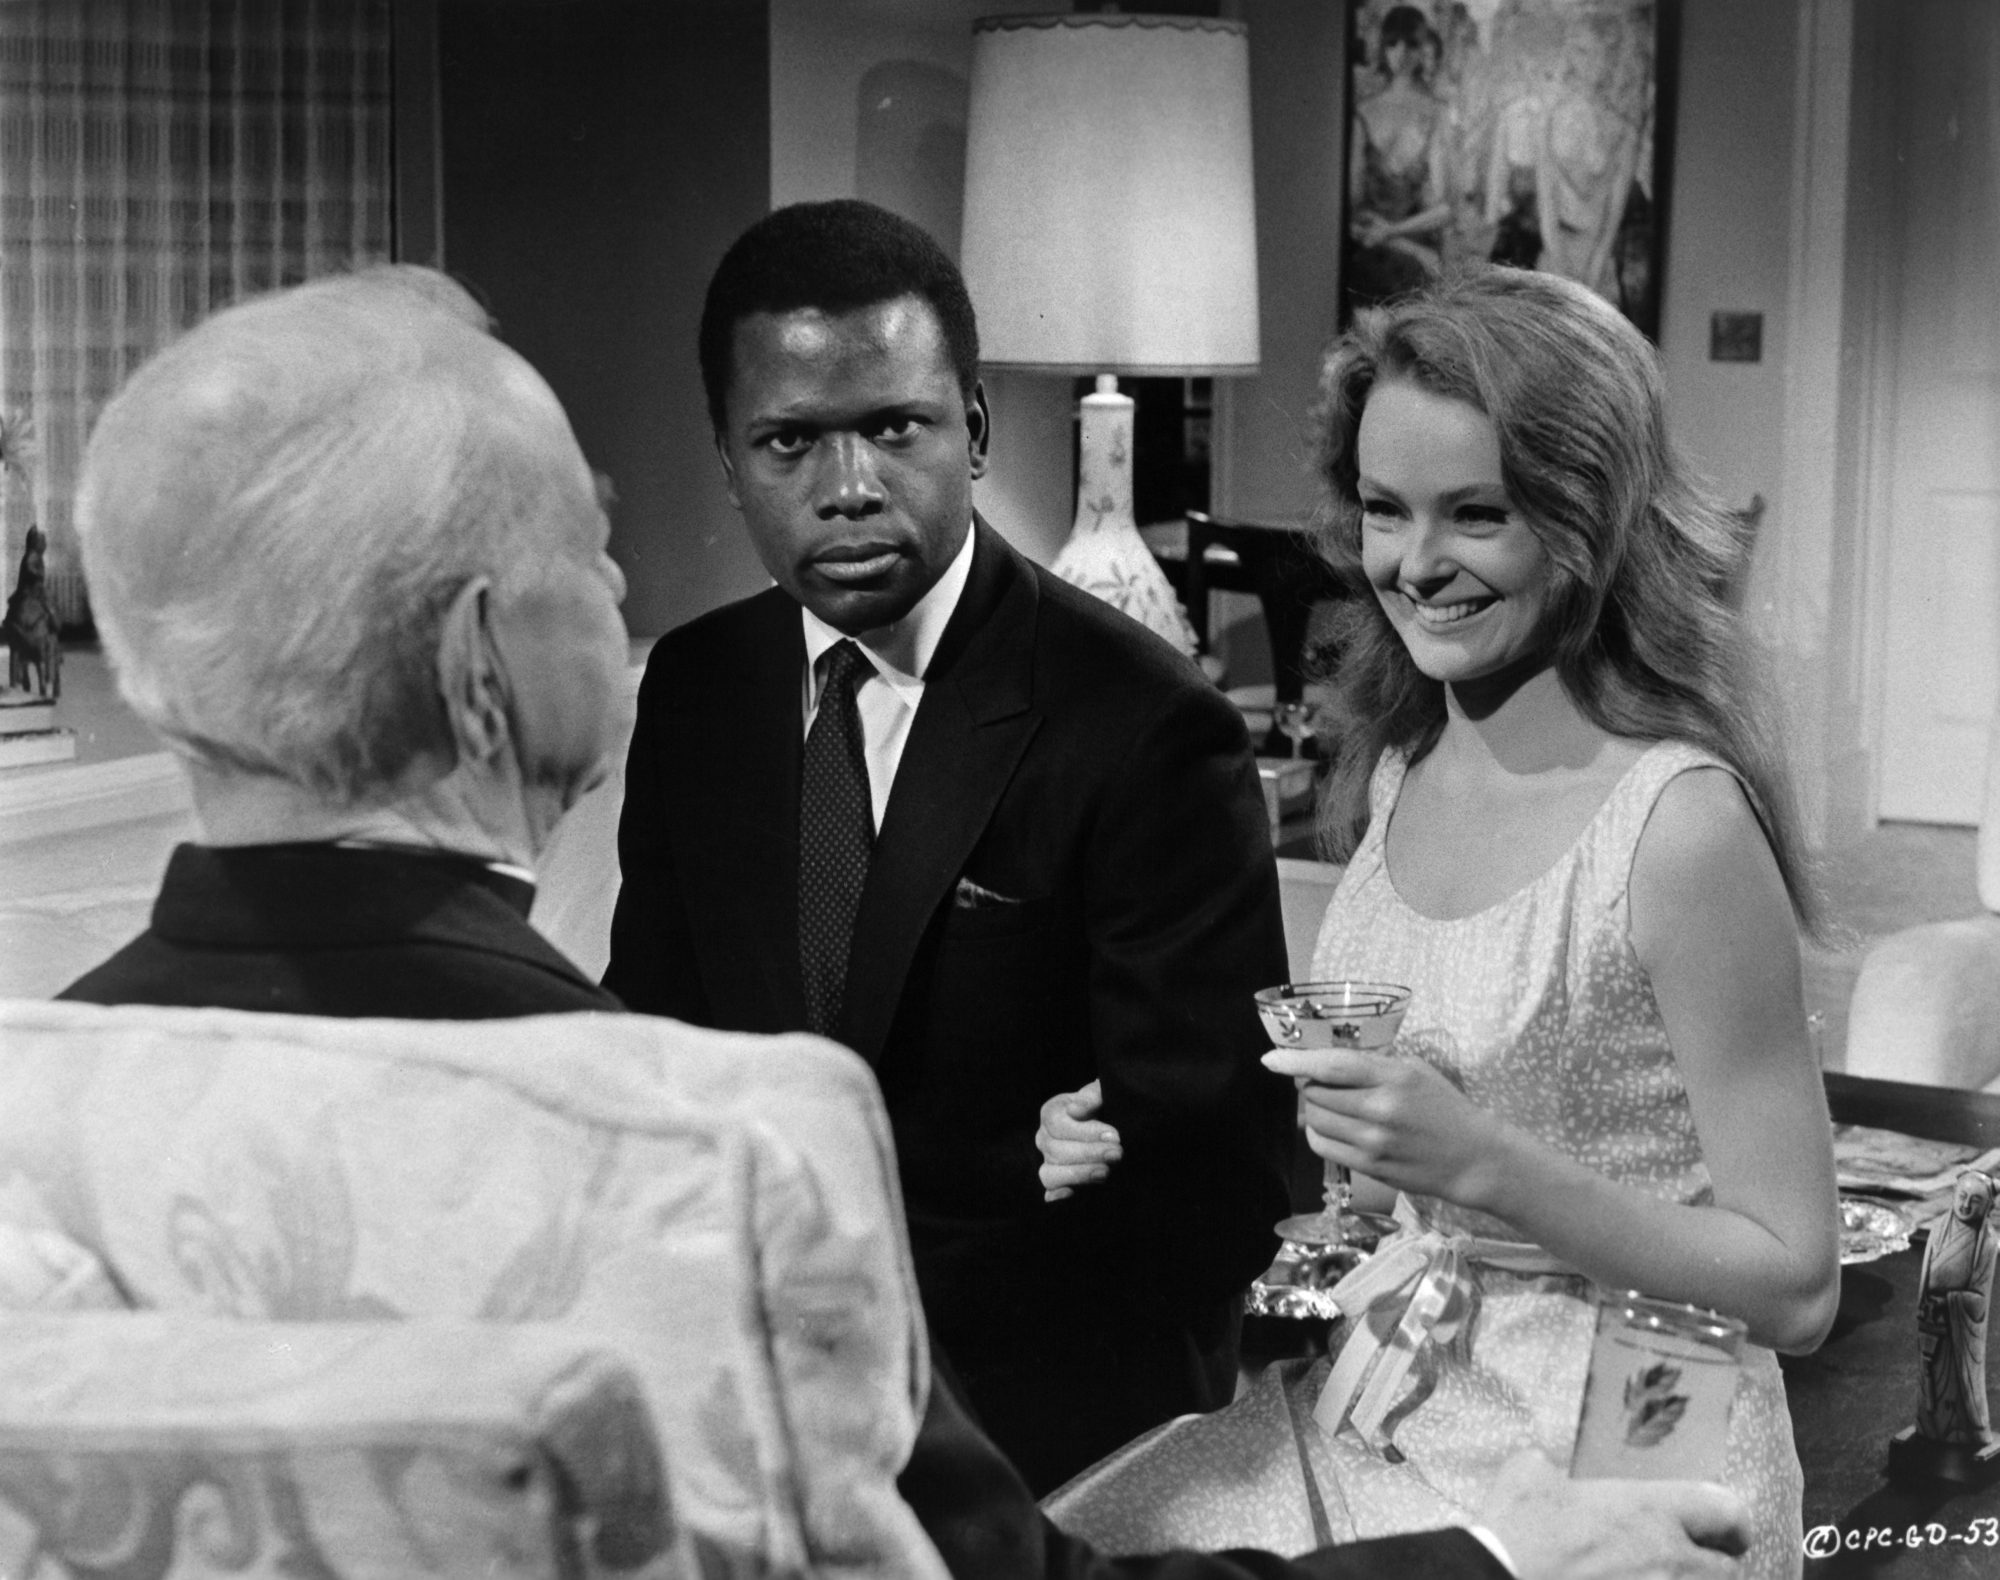 Sidney Poitier And Katharine Houghton In 'Guess Who's Coming to Dinner'